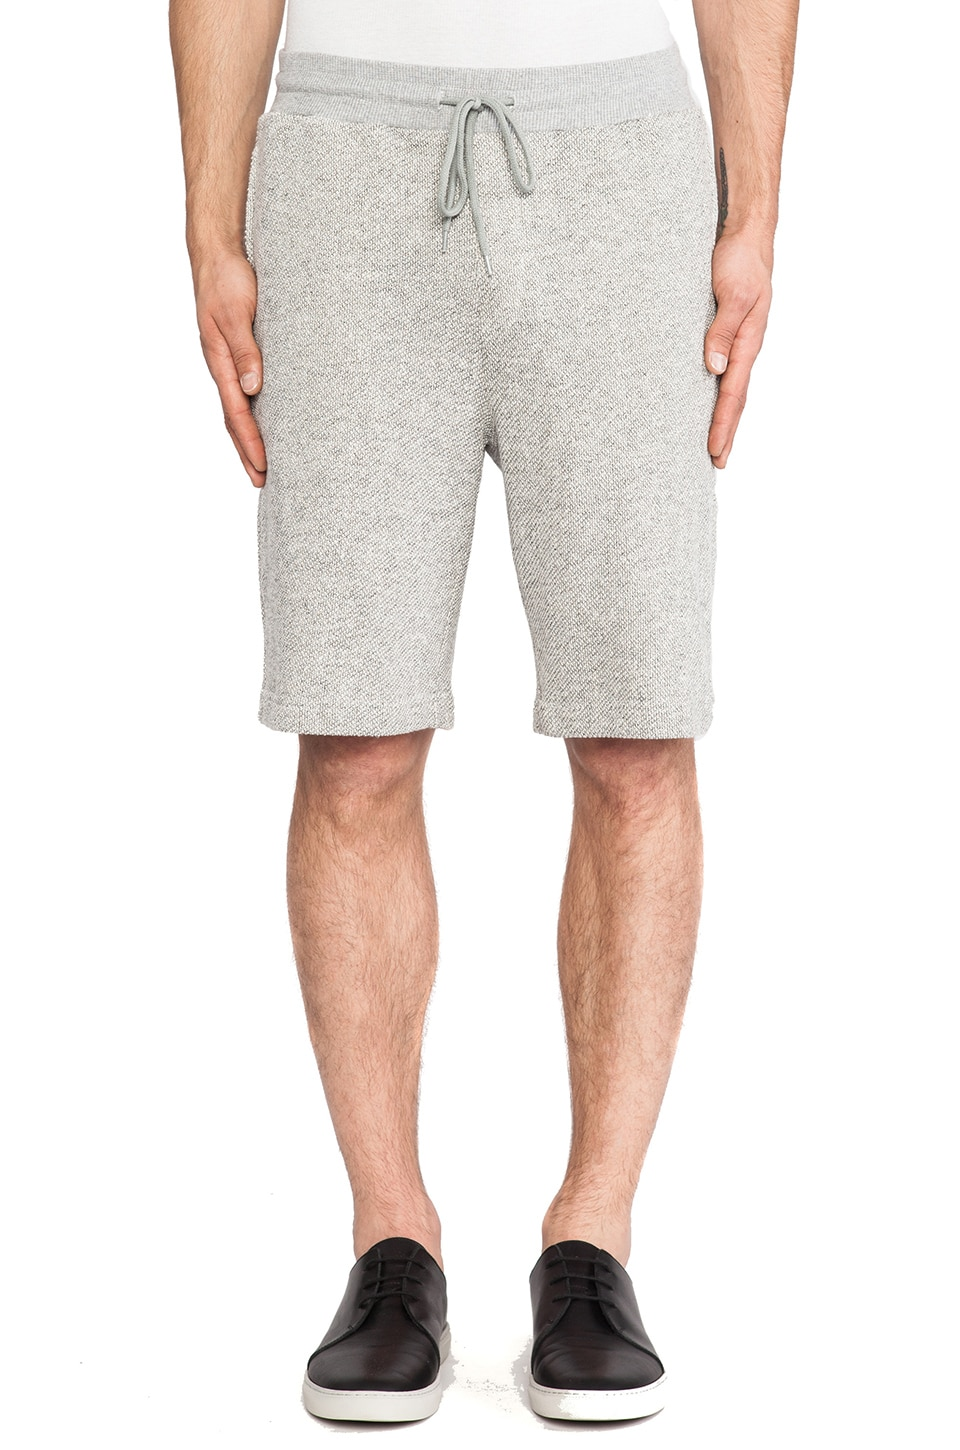 Shades of Grey by Micah Cohen Sweatshort in Light Heather Grey